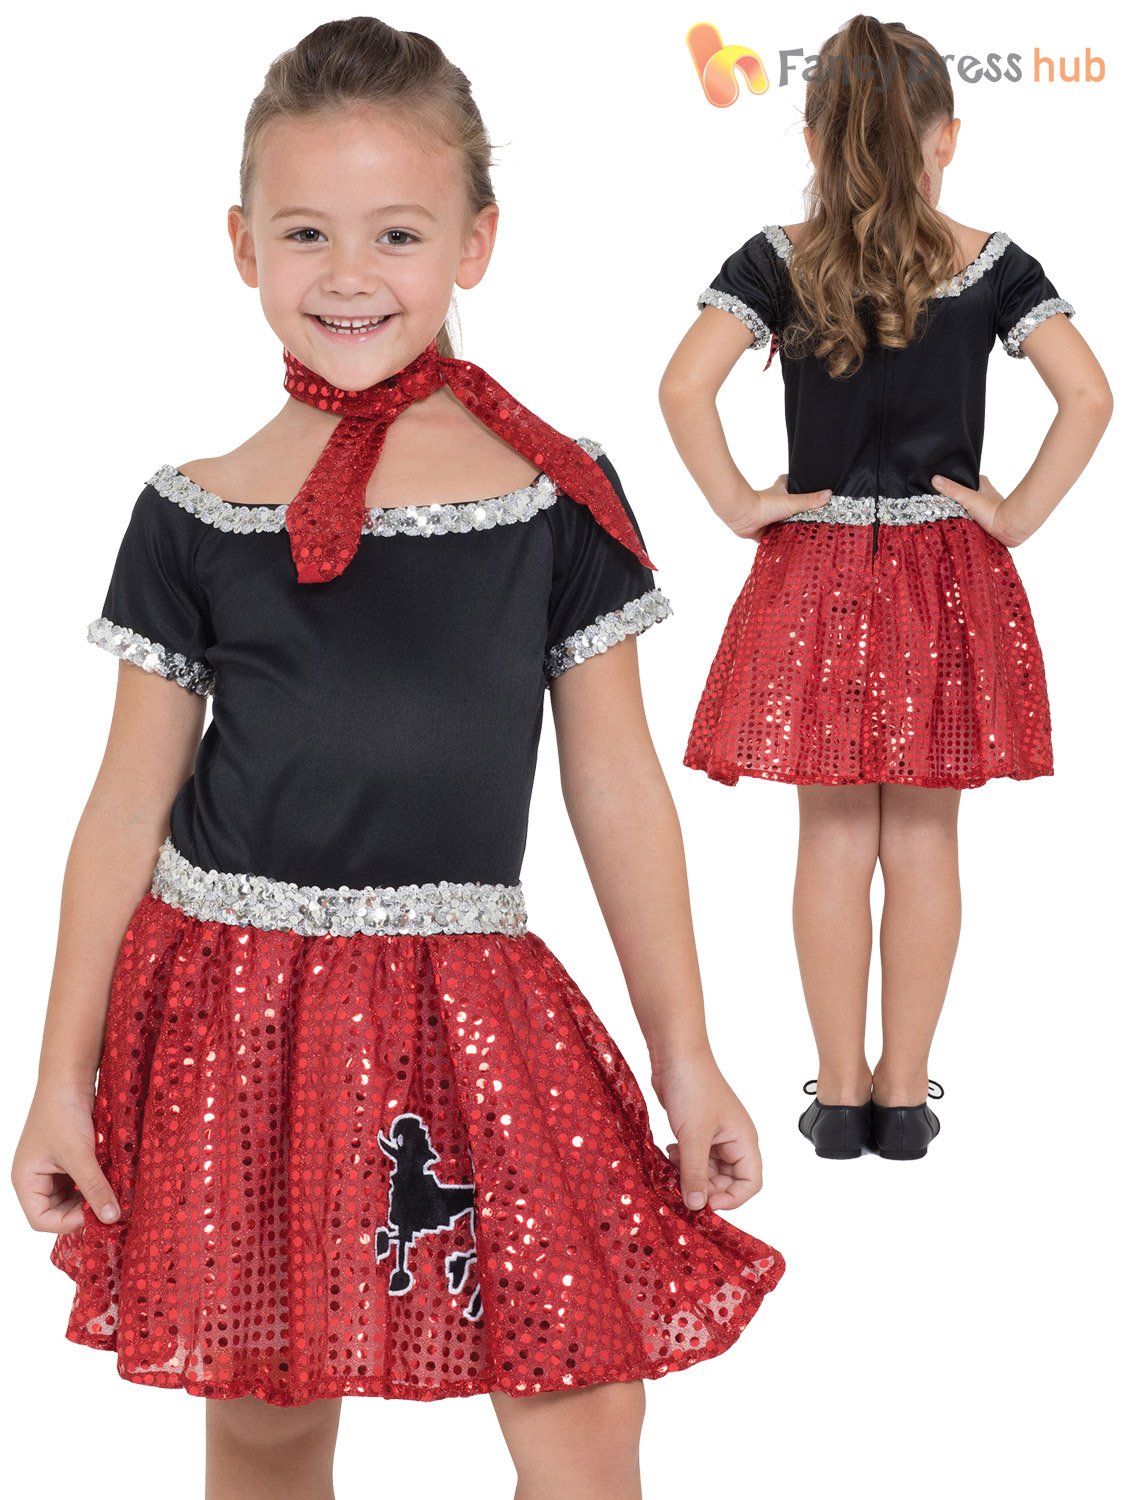 Girls Rock N Roll Red Sequin Costume Child Retro 50s 60s Fancy Dress Kids Outfit